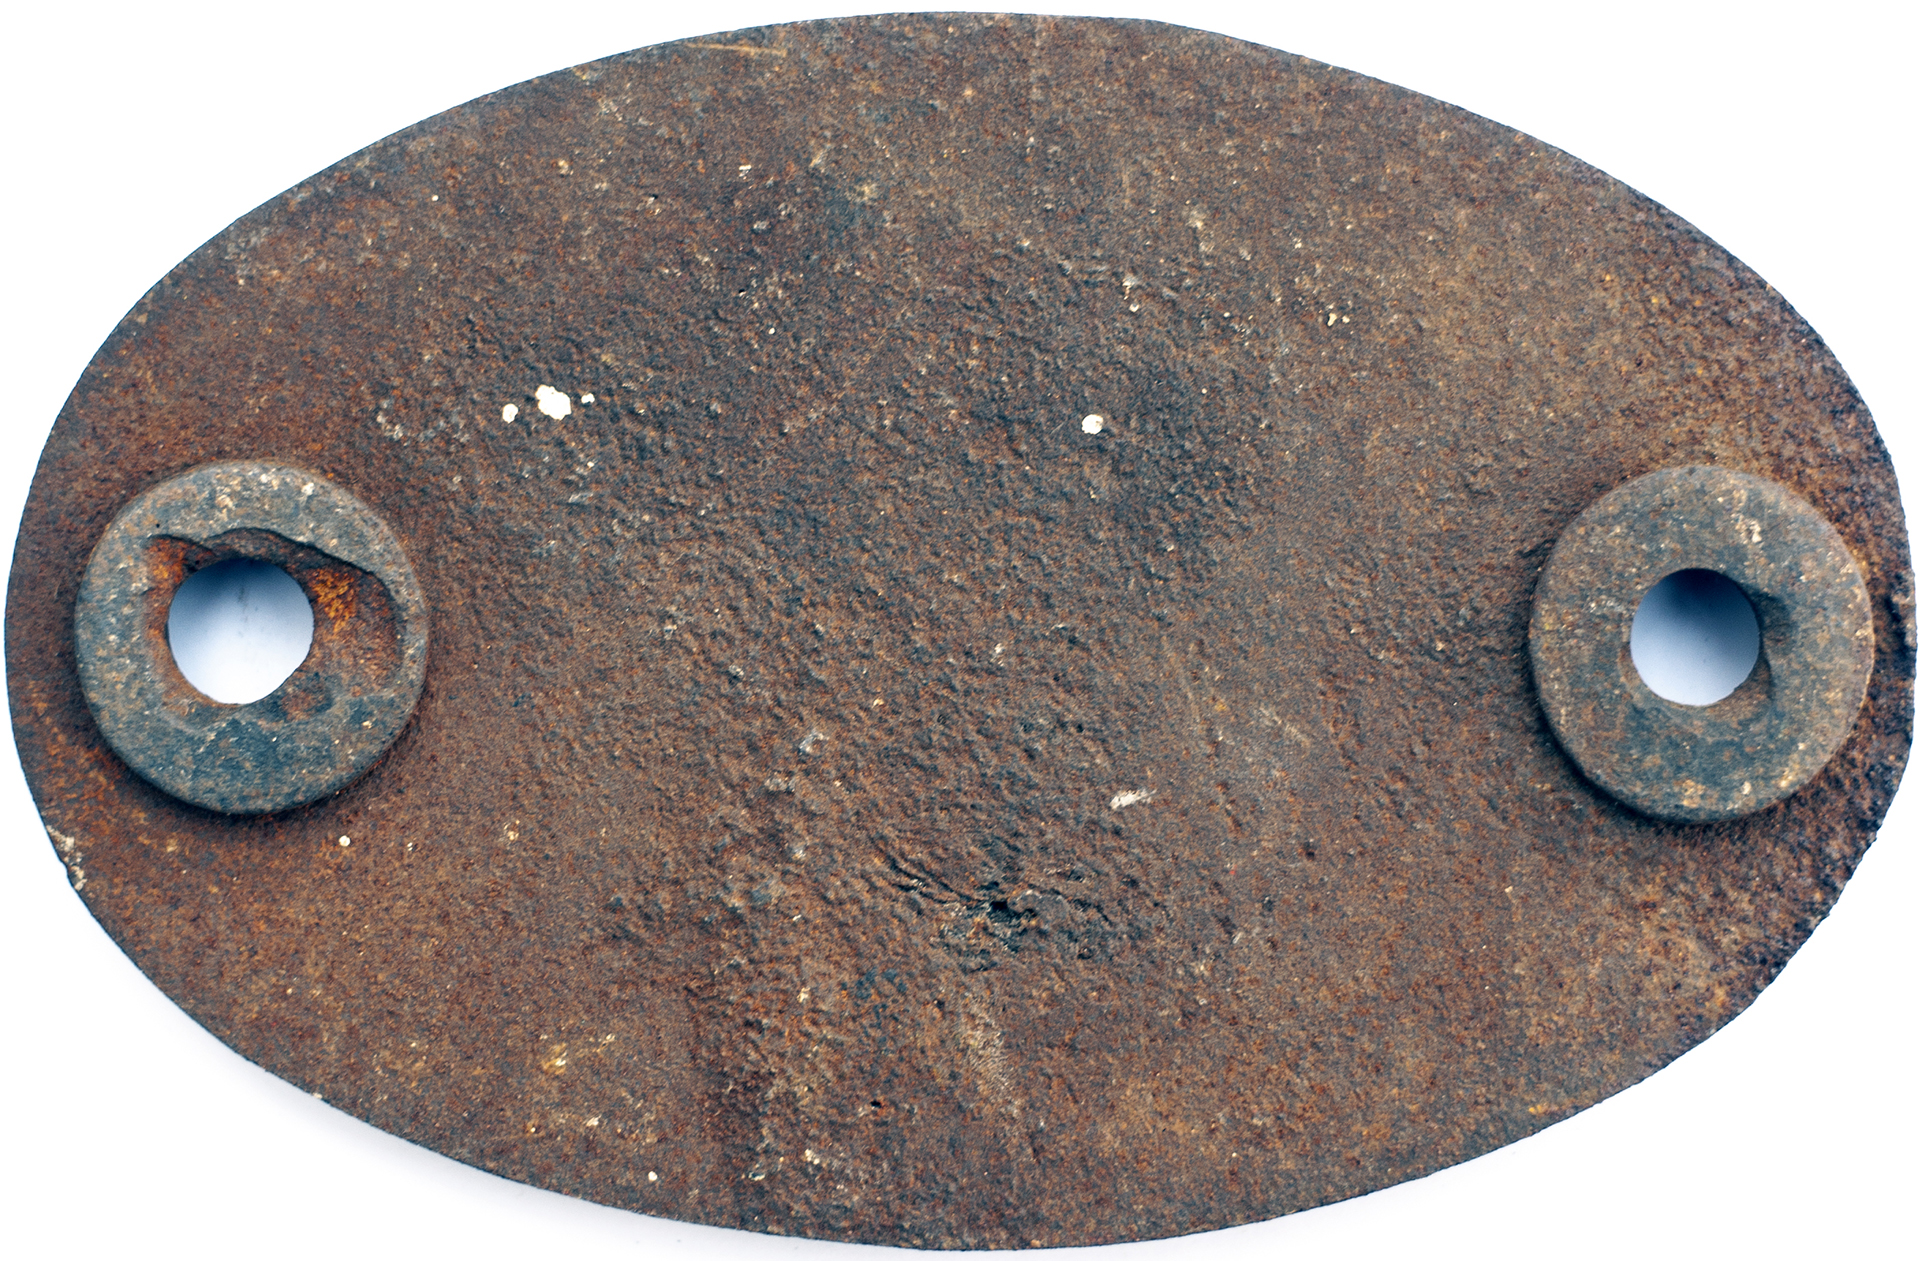 Shedplate 14A Cricklewood 1950 - 1963. In as removed condition with clear Derby casting bars. - Image 2 of 2